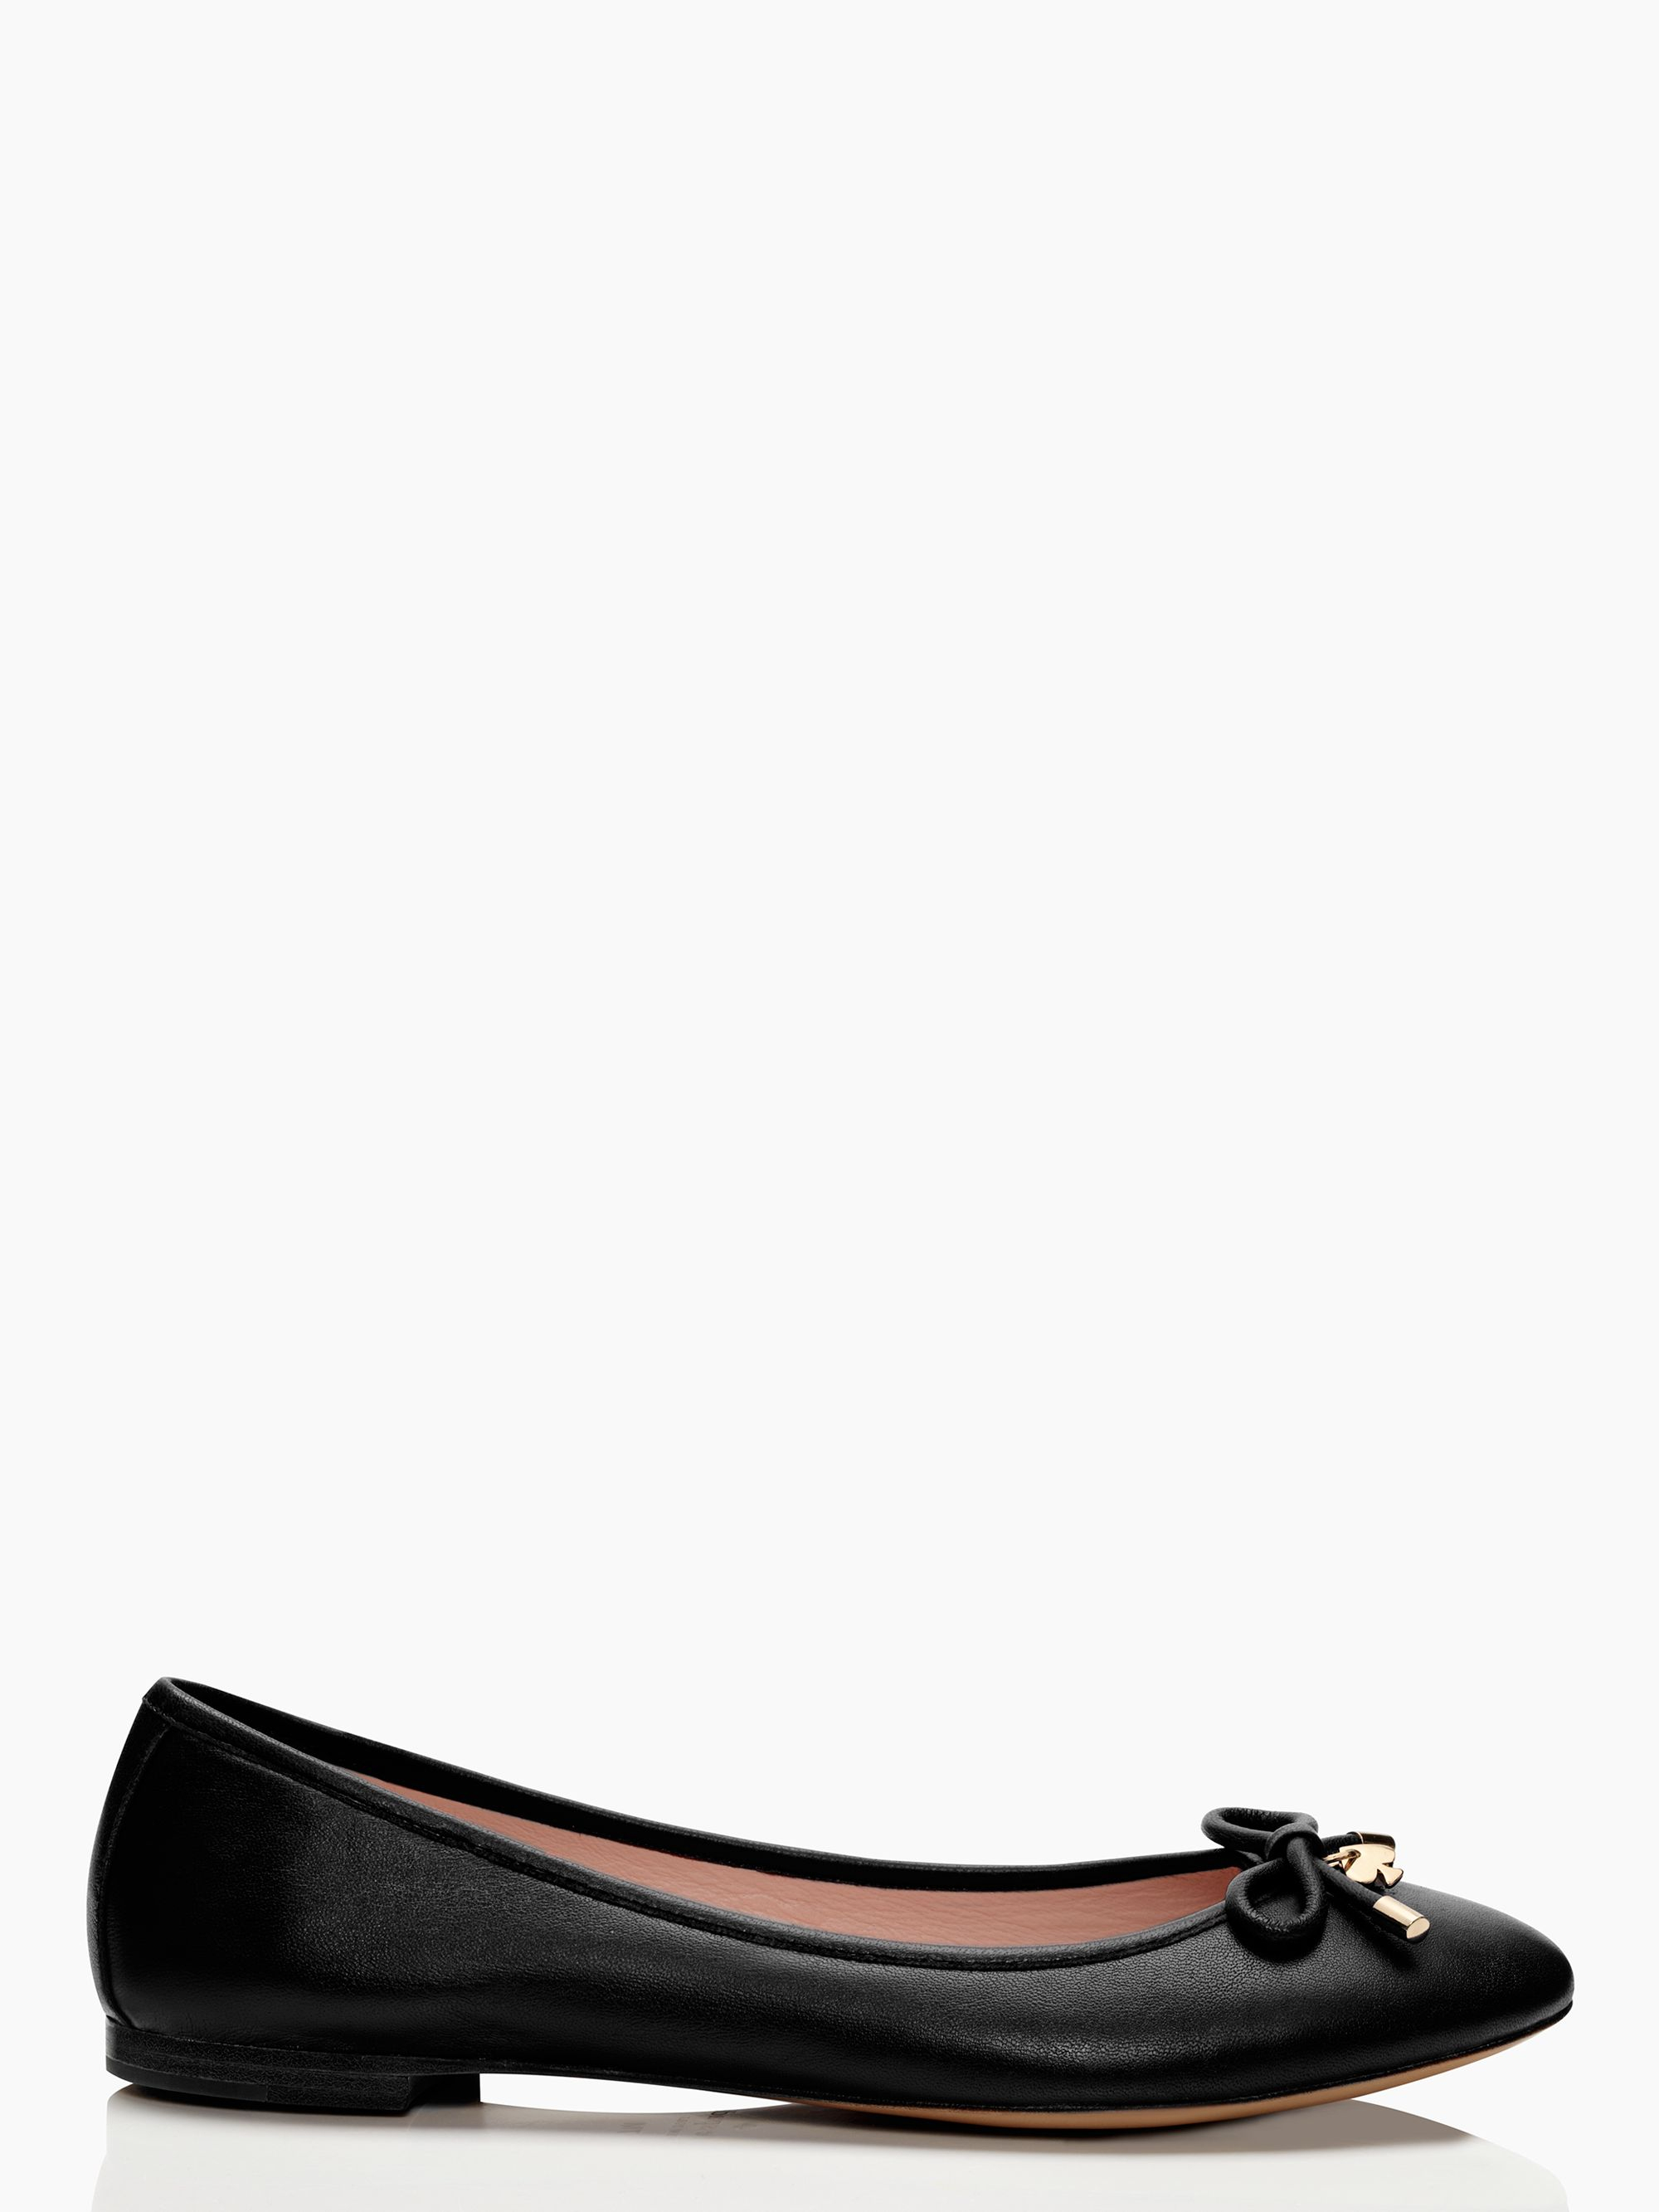 Kate spade willa flats in black lyst for Kate spade new york flats